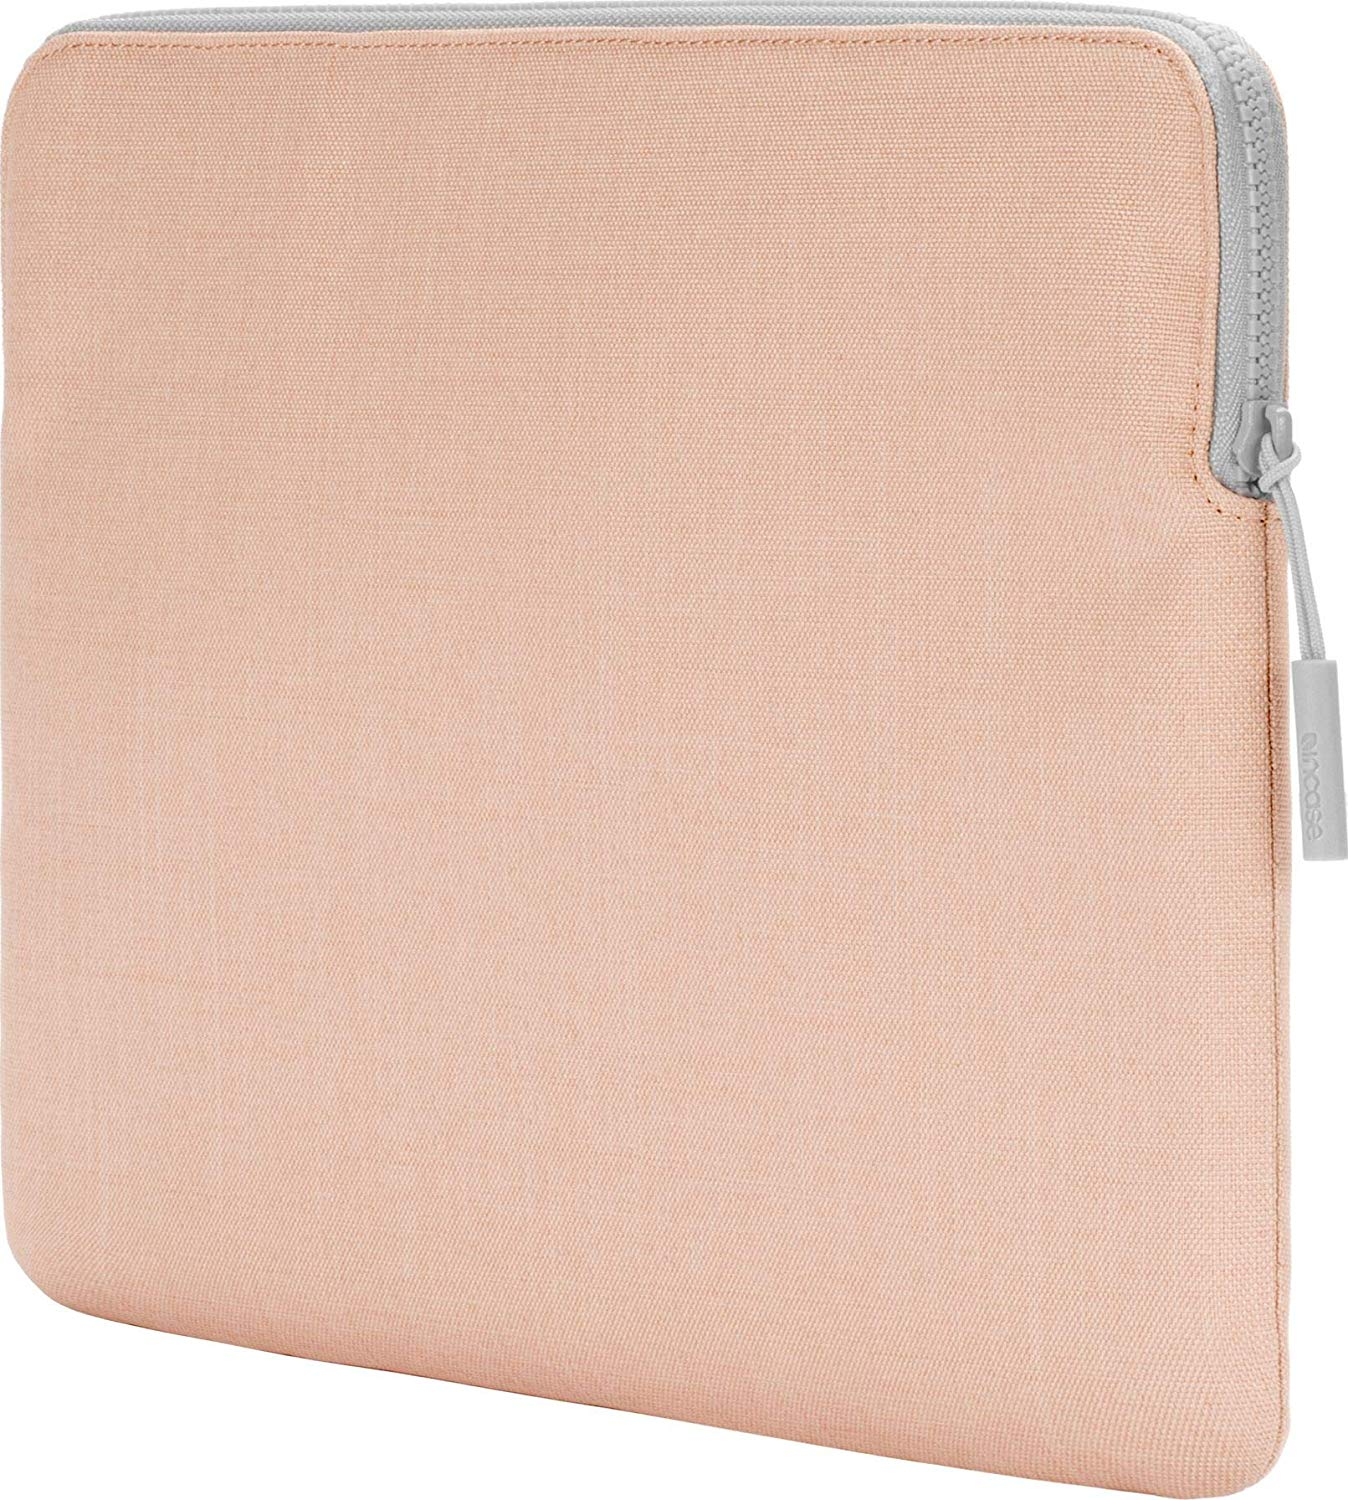 Incase - ICON Sleeve for 13.3 Inch Apple MacBook Pro - Blush Pink